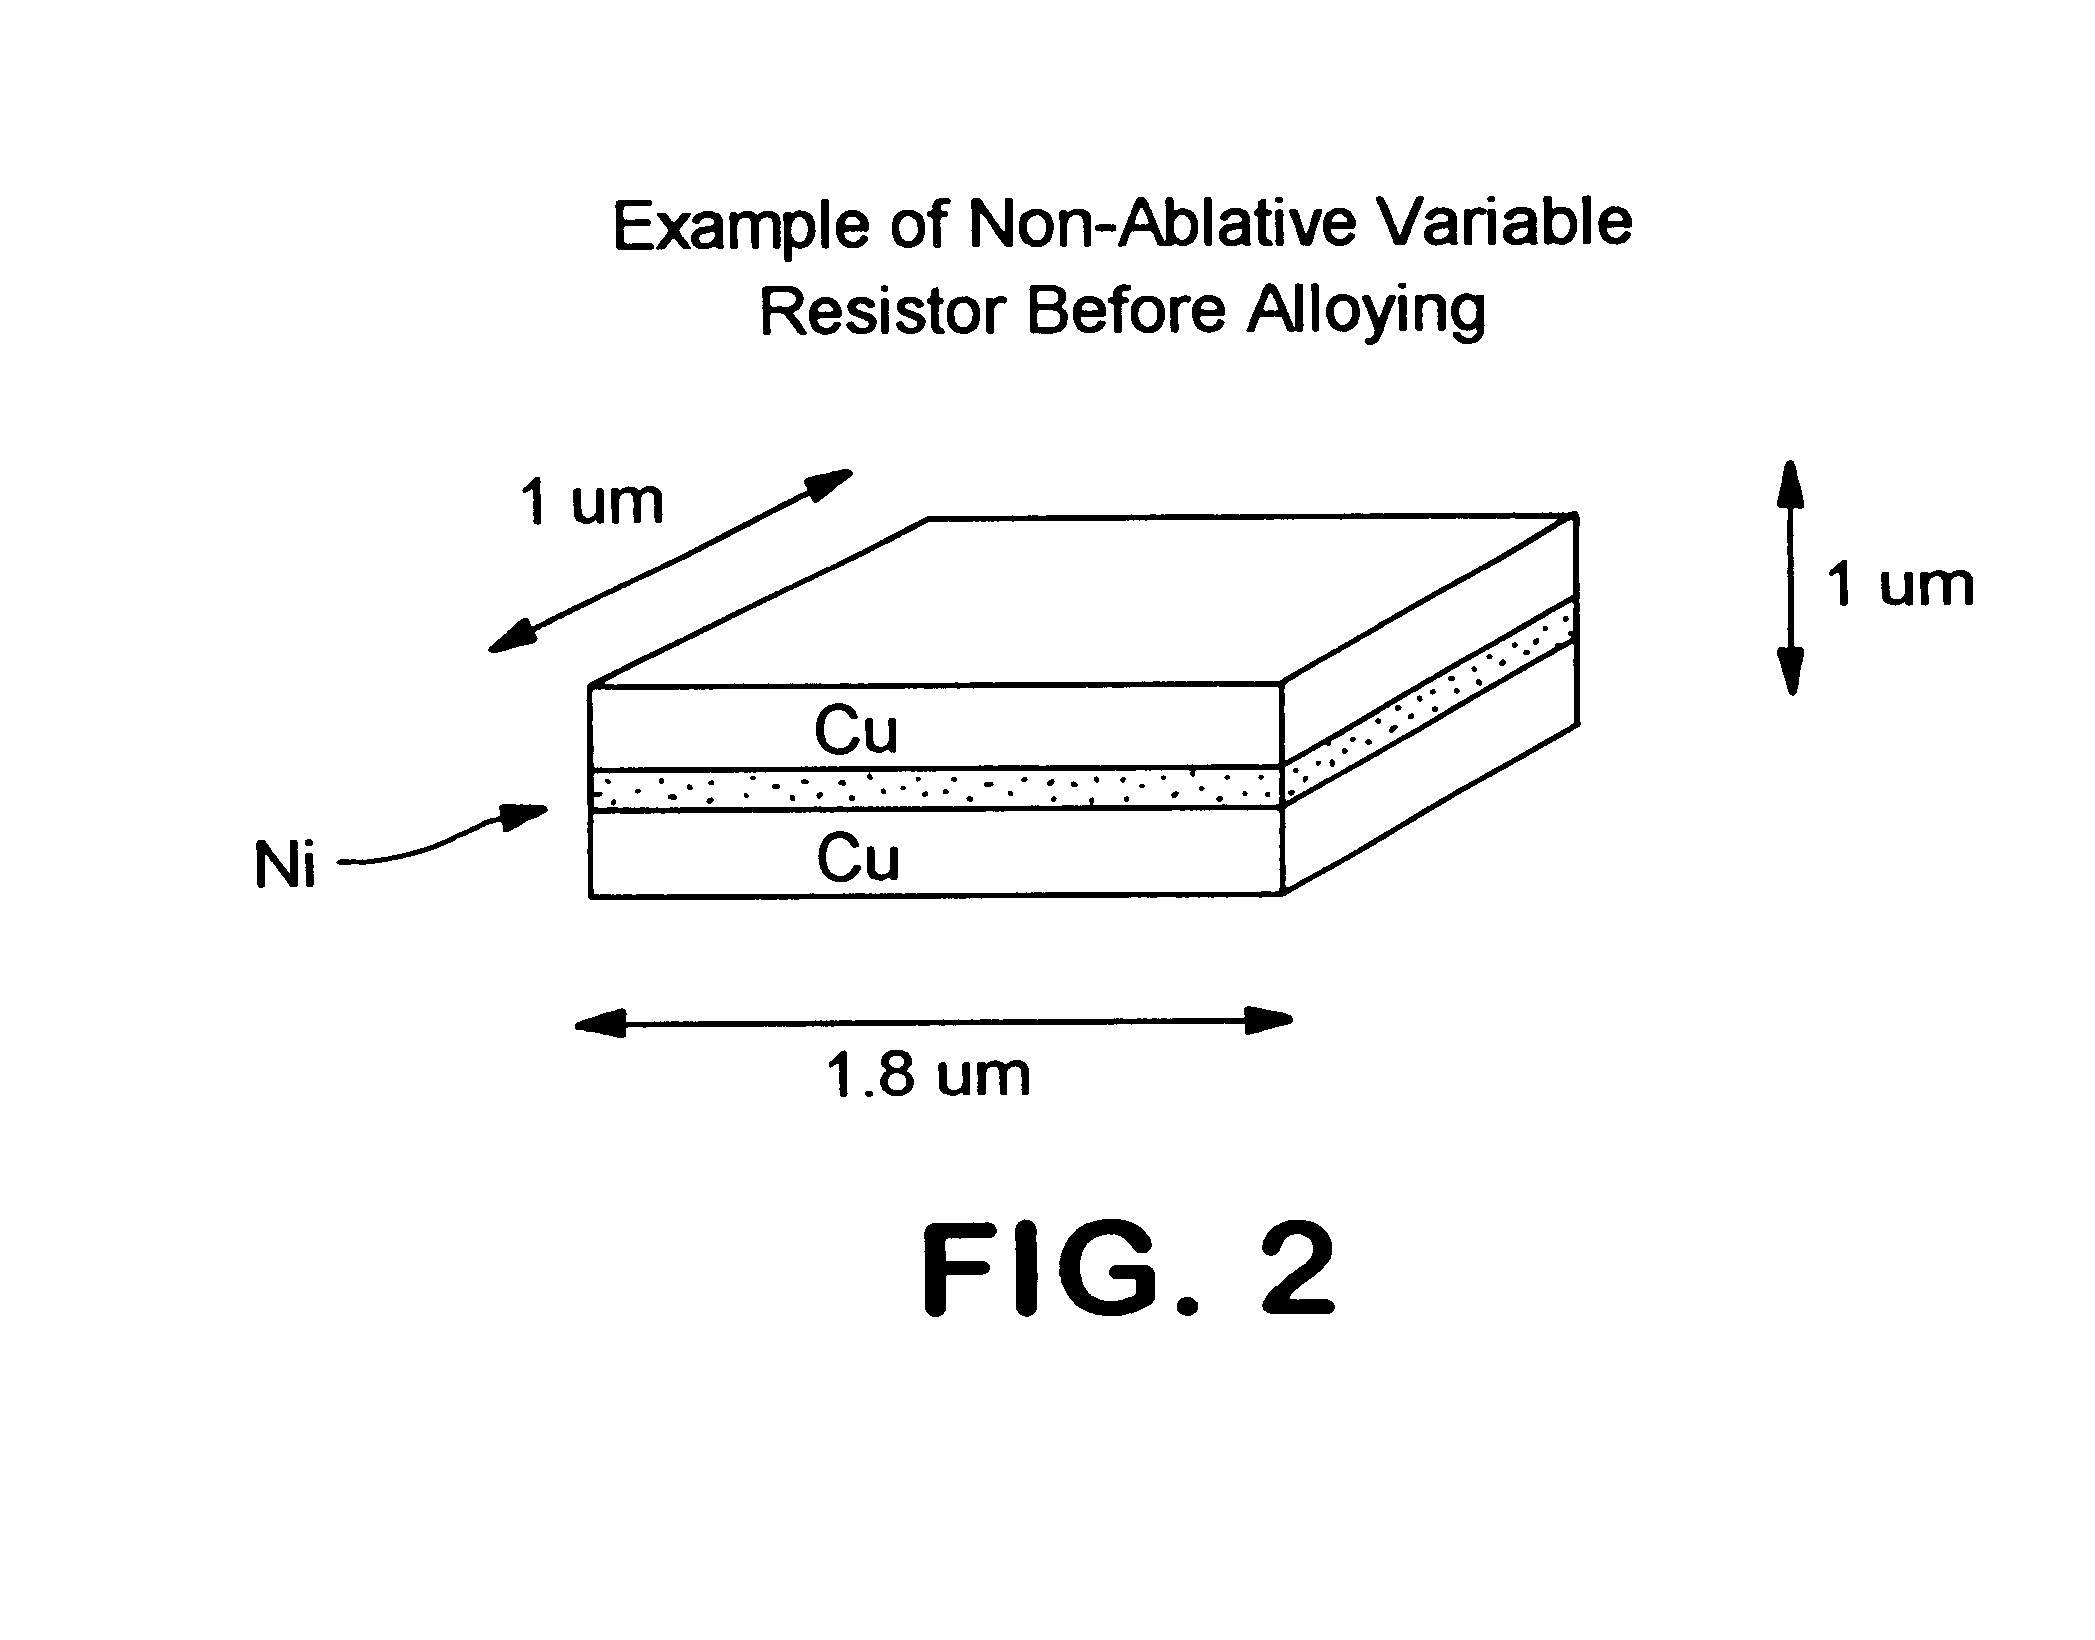 nonlinear variable resistor google patents on 3 wire variablepatent us6700161 variable resistor structure and method fornonlinear variable resistor google patents on 3 wire variable